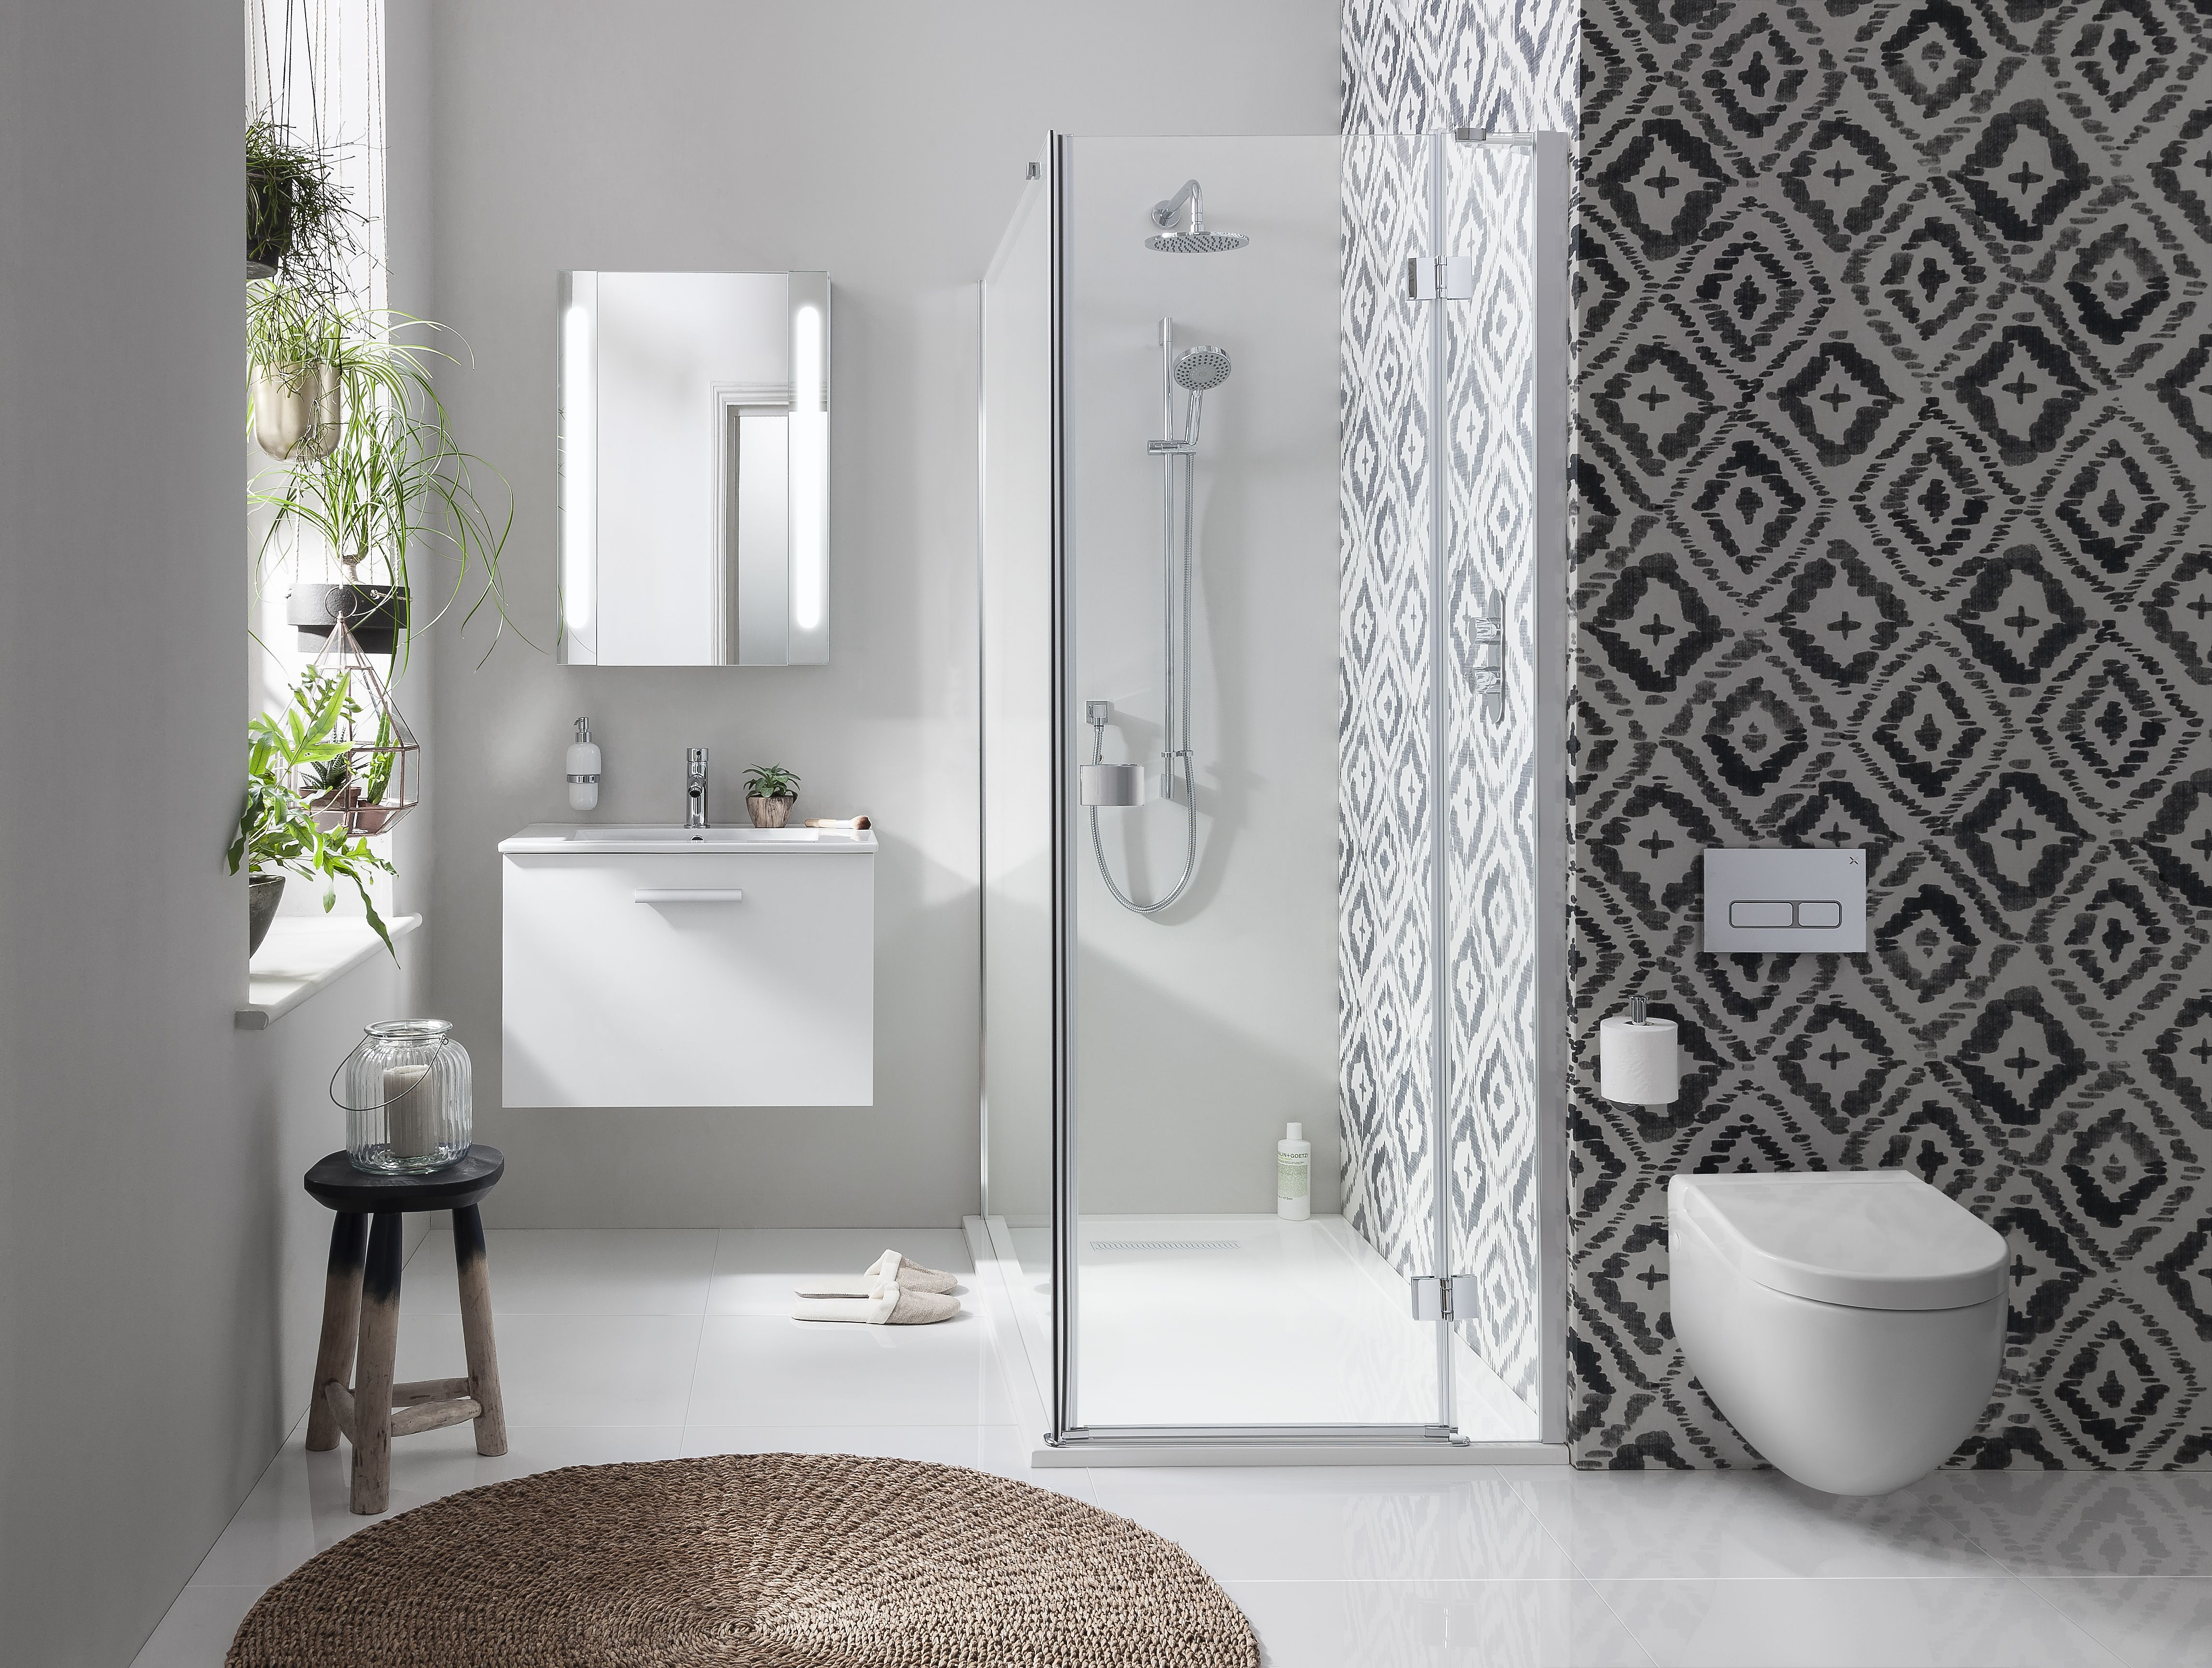 Outstanding Bathroom: Get The Look For Less In Your Bathroom